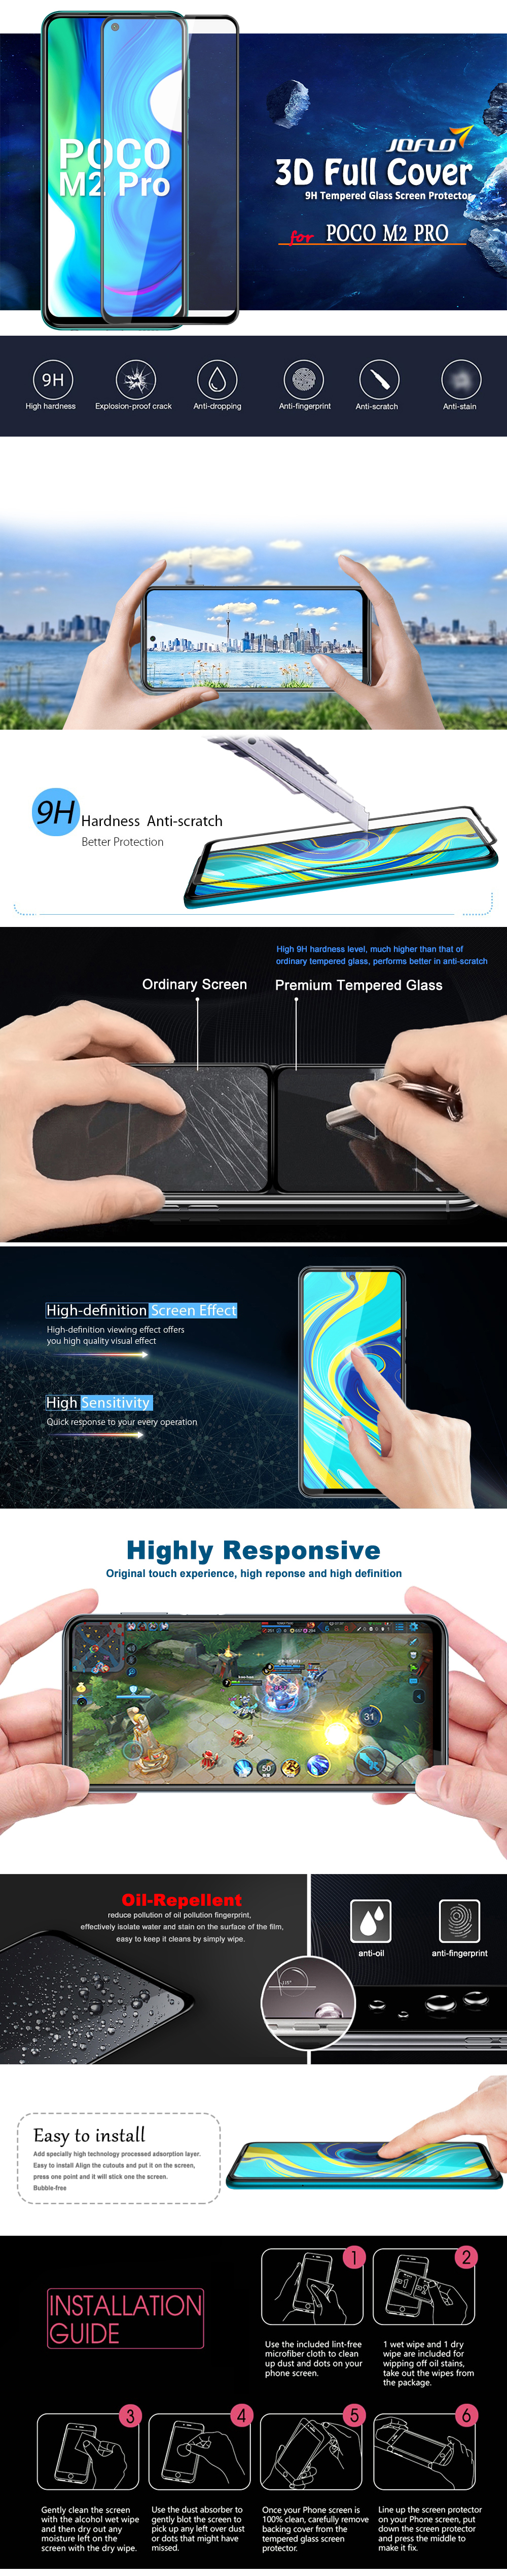 3D Full Cover Tempered Glass Screen Protector Film for Xiaomi POCO M2 Pro - Black 1pc